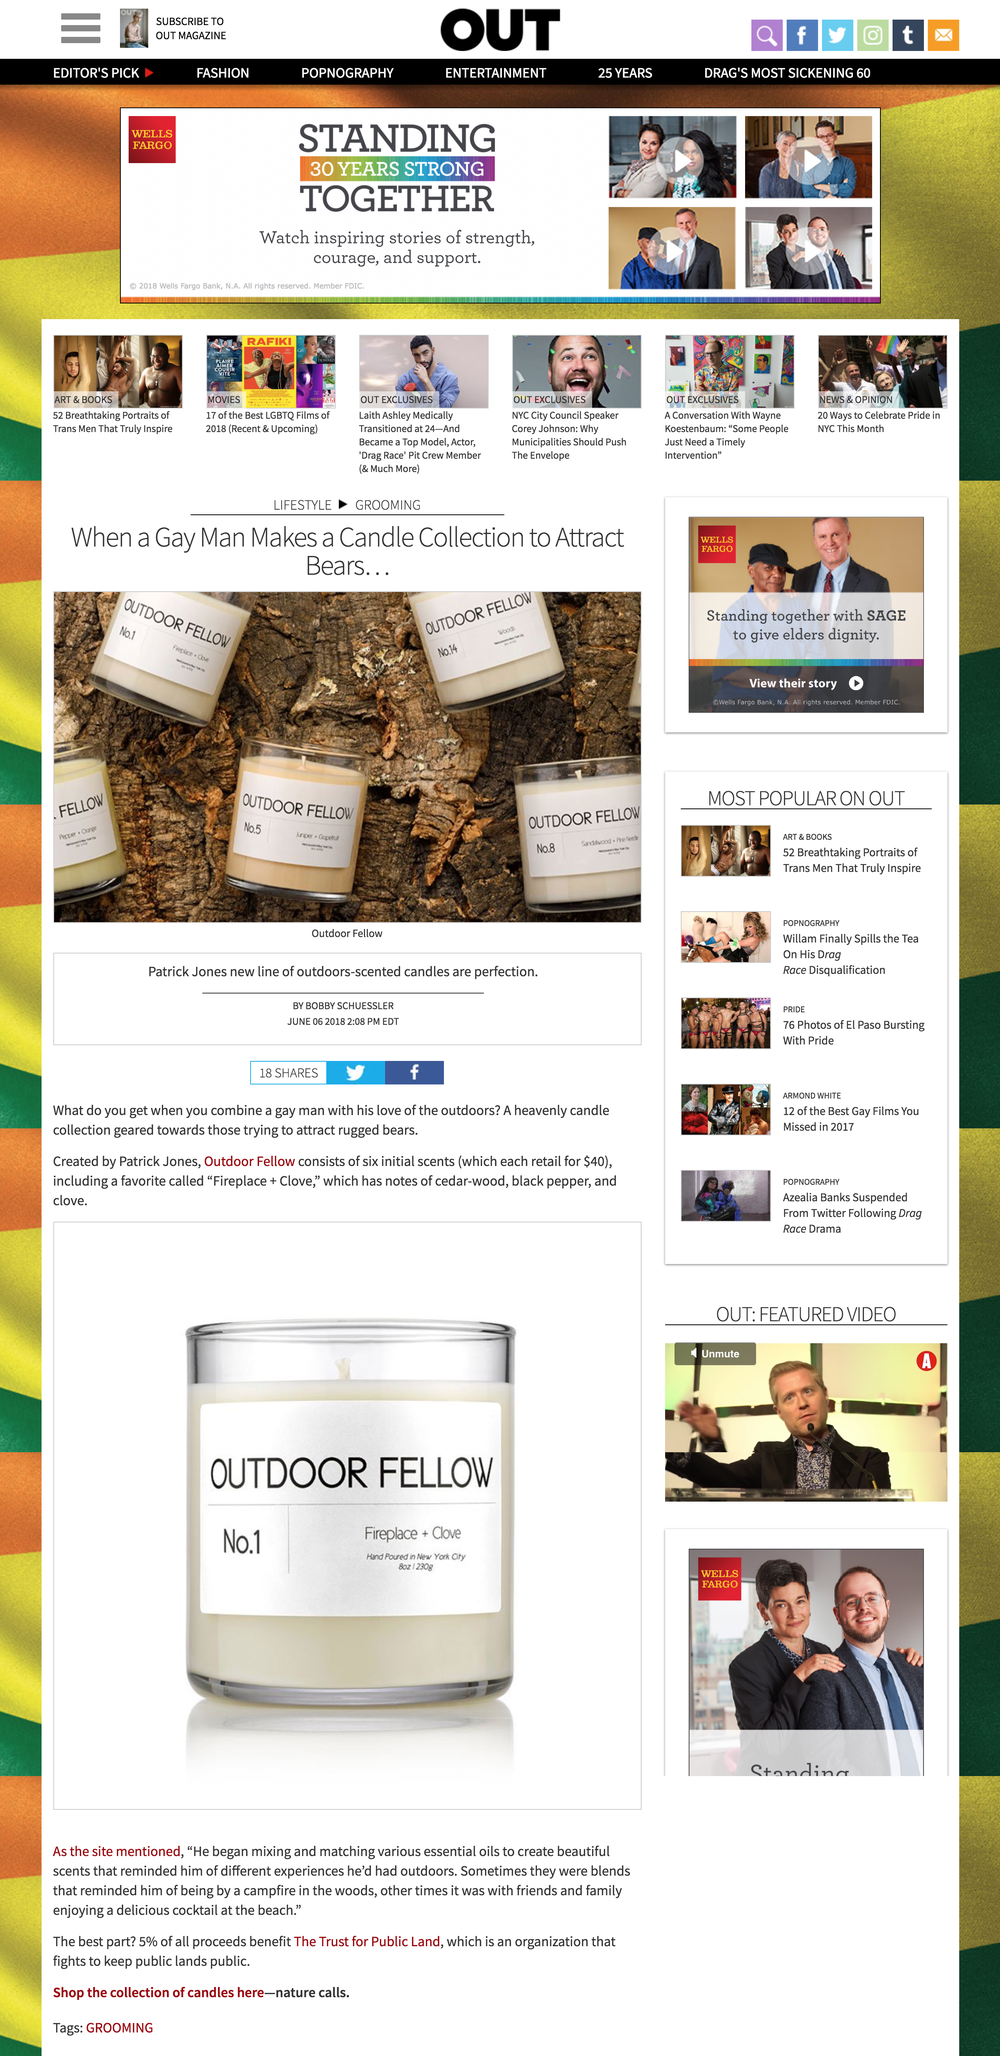 Out.com - Outdoor Fellow - 6-6-18.png